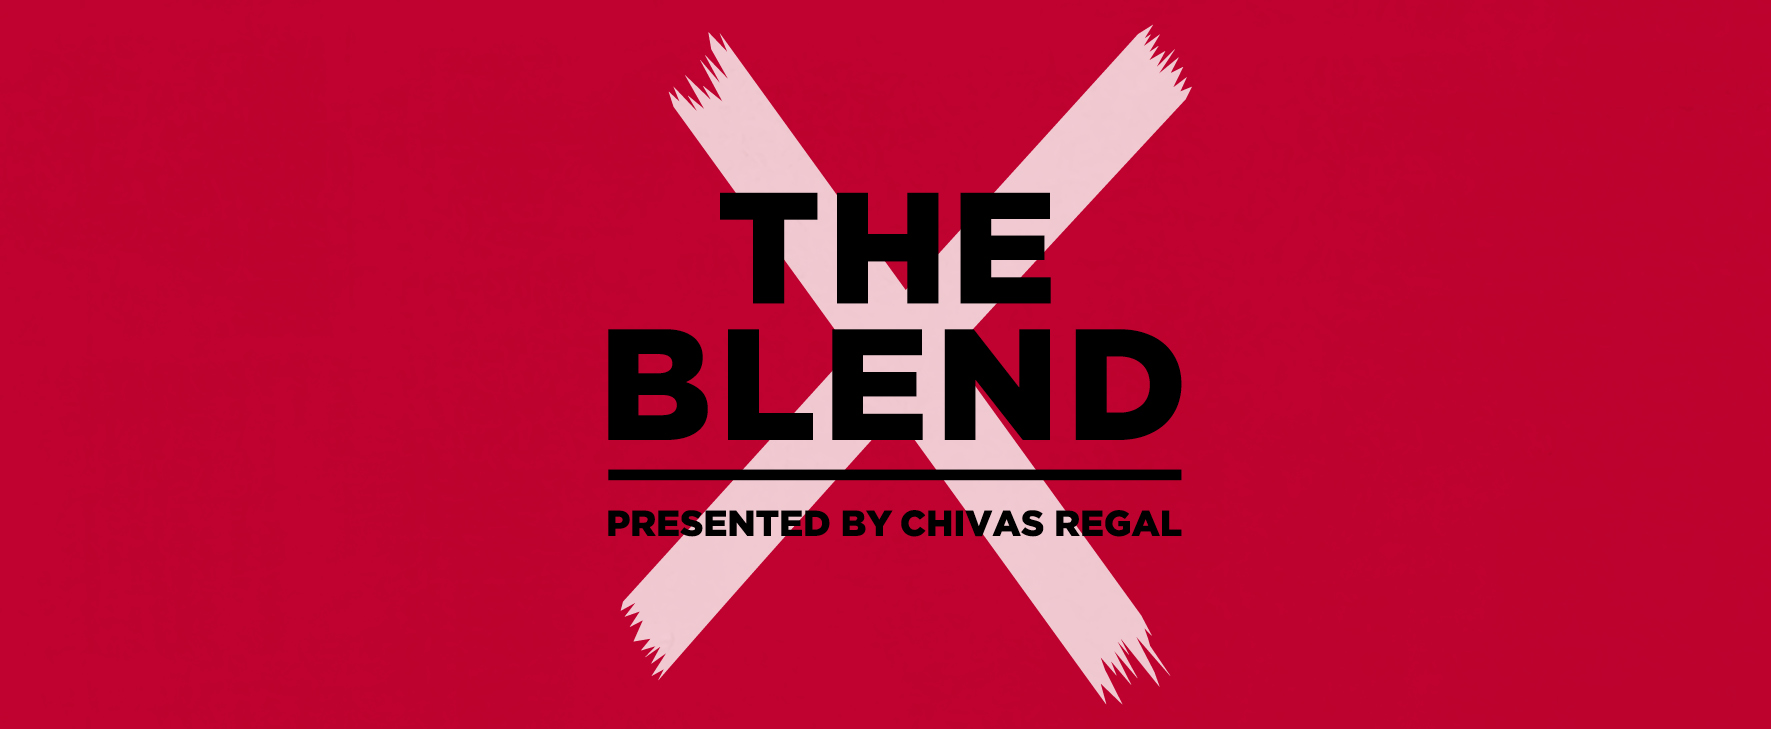 Tickets for The Blend at Ms.G's, presented by Chivas Regal in Potts Point from Merivale